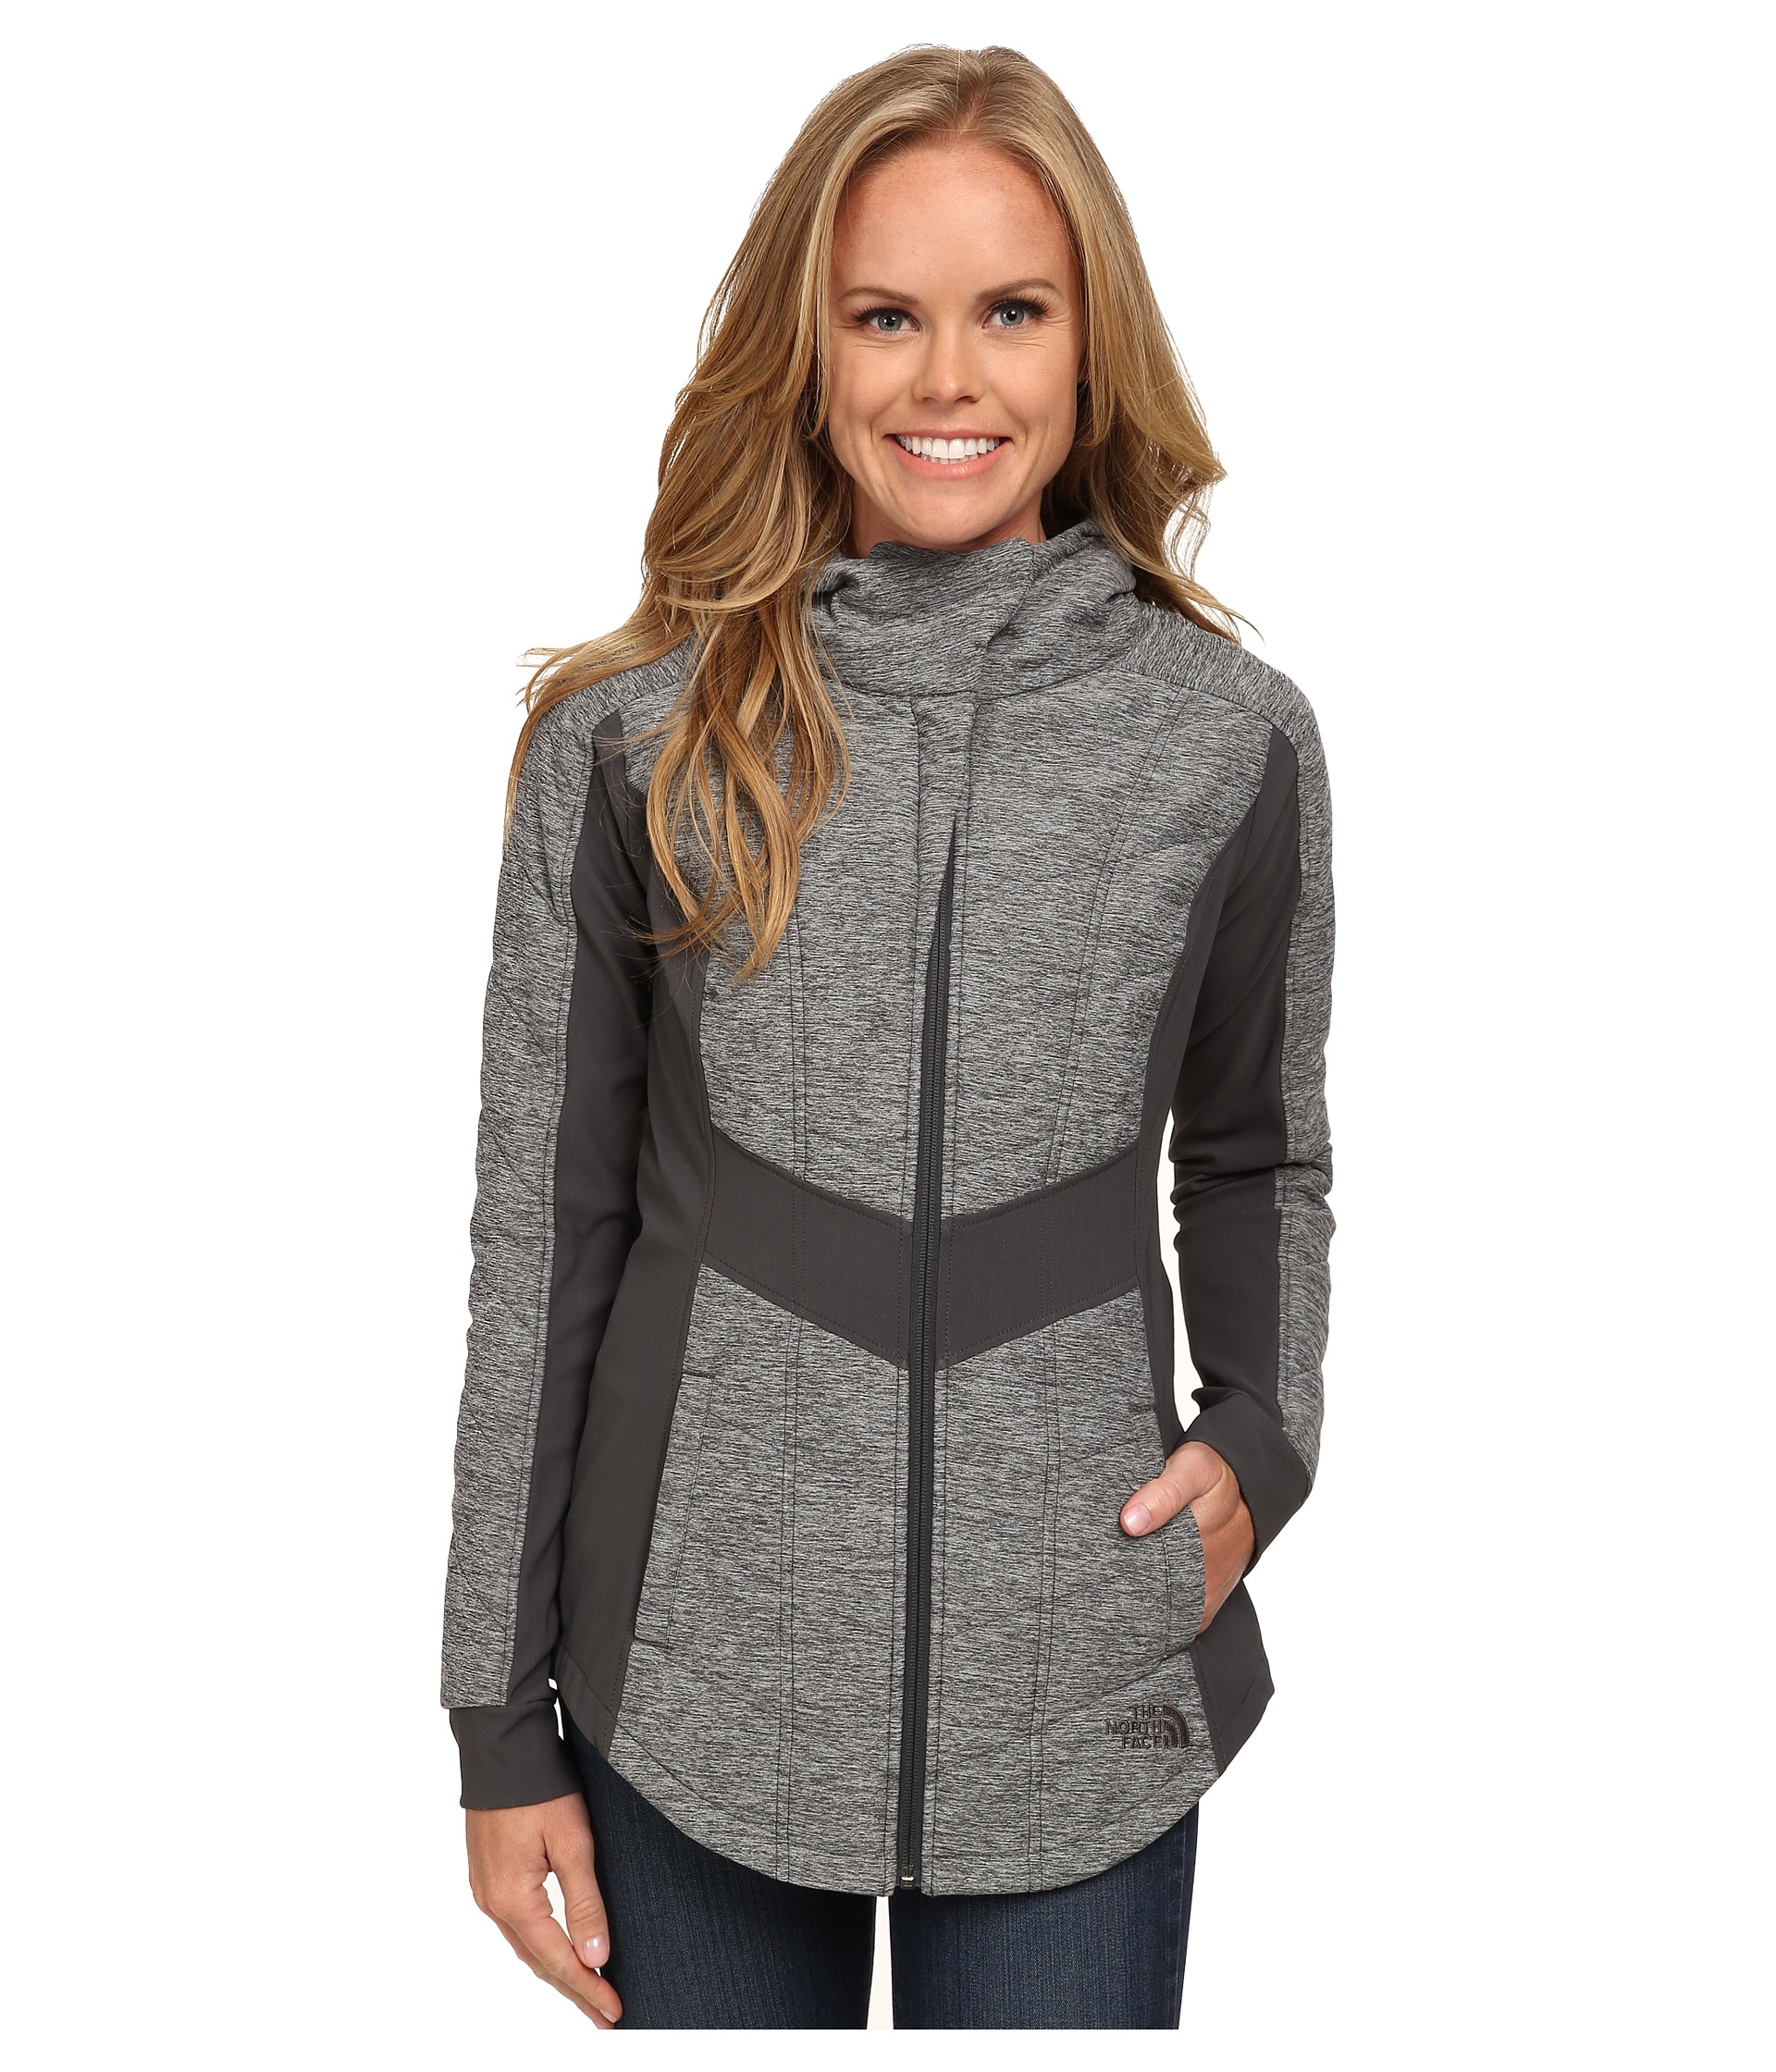 ce88b4e21c94 ... wholesale 000 lyst the north face pseudio jacket in gray 9689b 60d0a